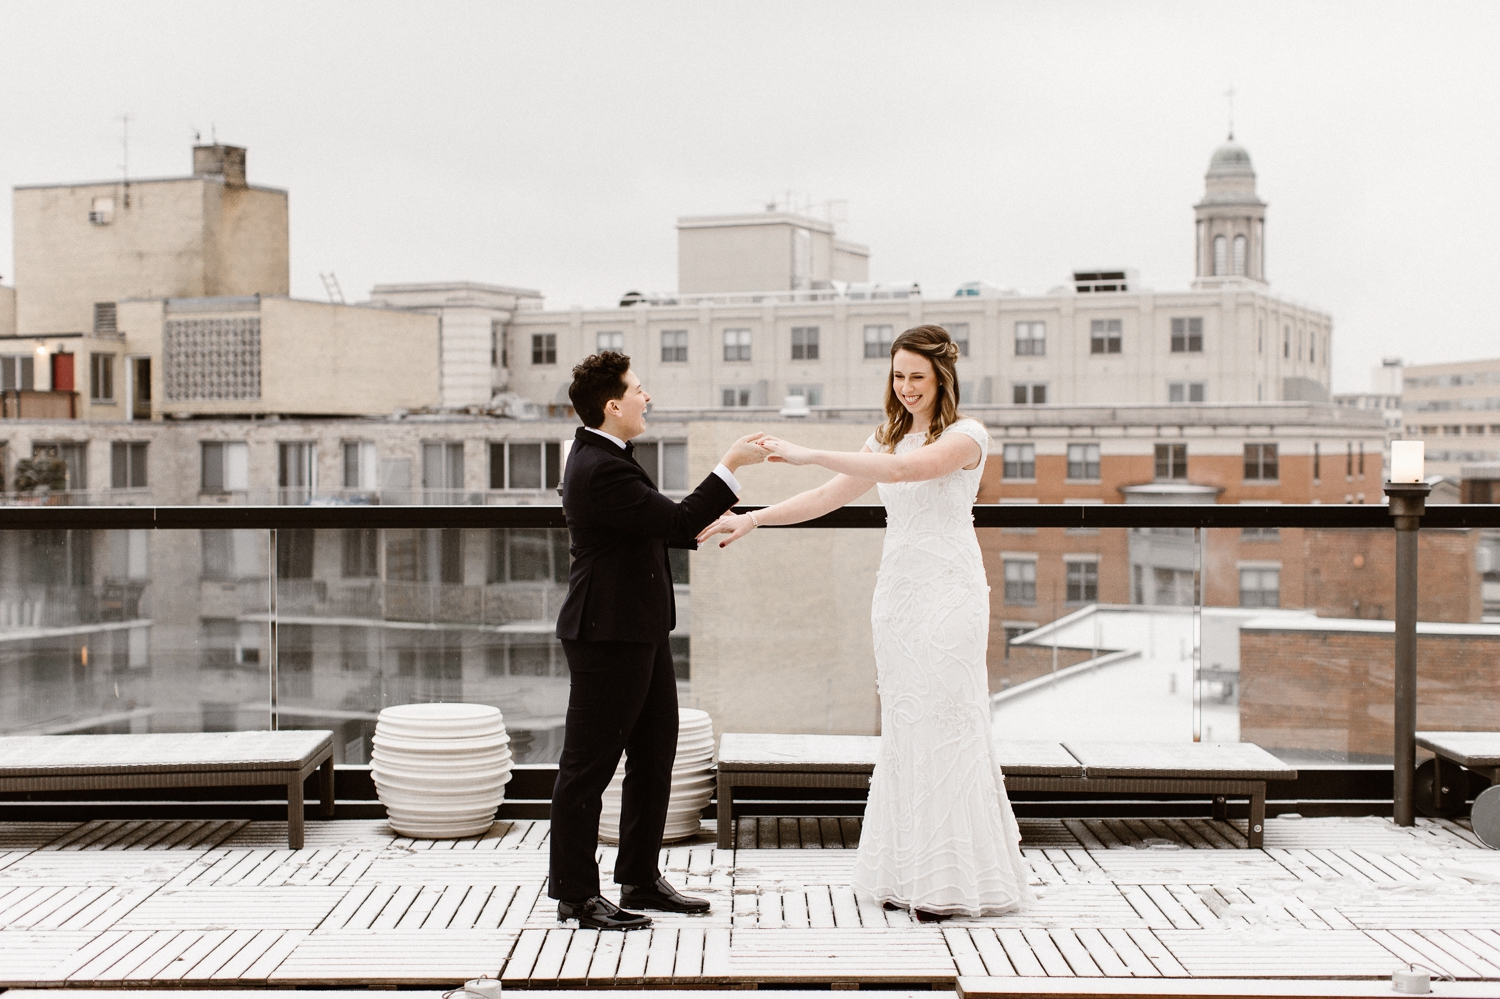 mason-and-rook-first-look-rooftop-josephine-butler-parks-wedding-photographer 48.jpg